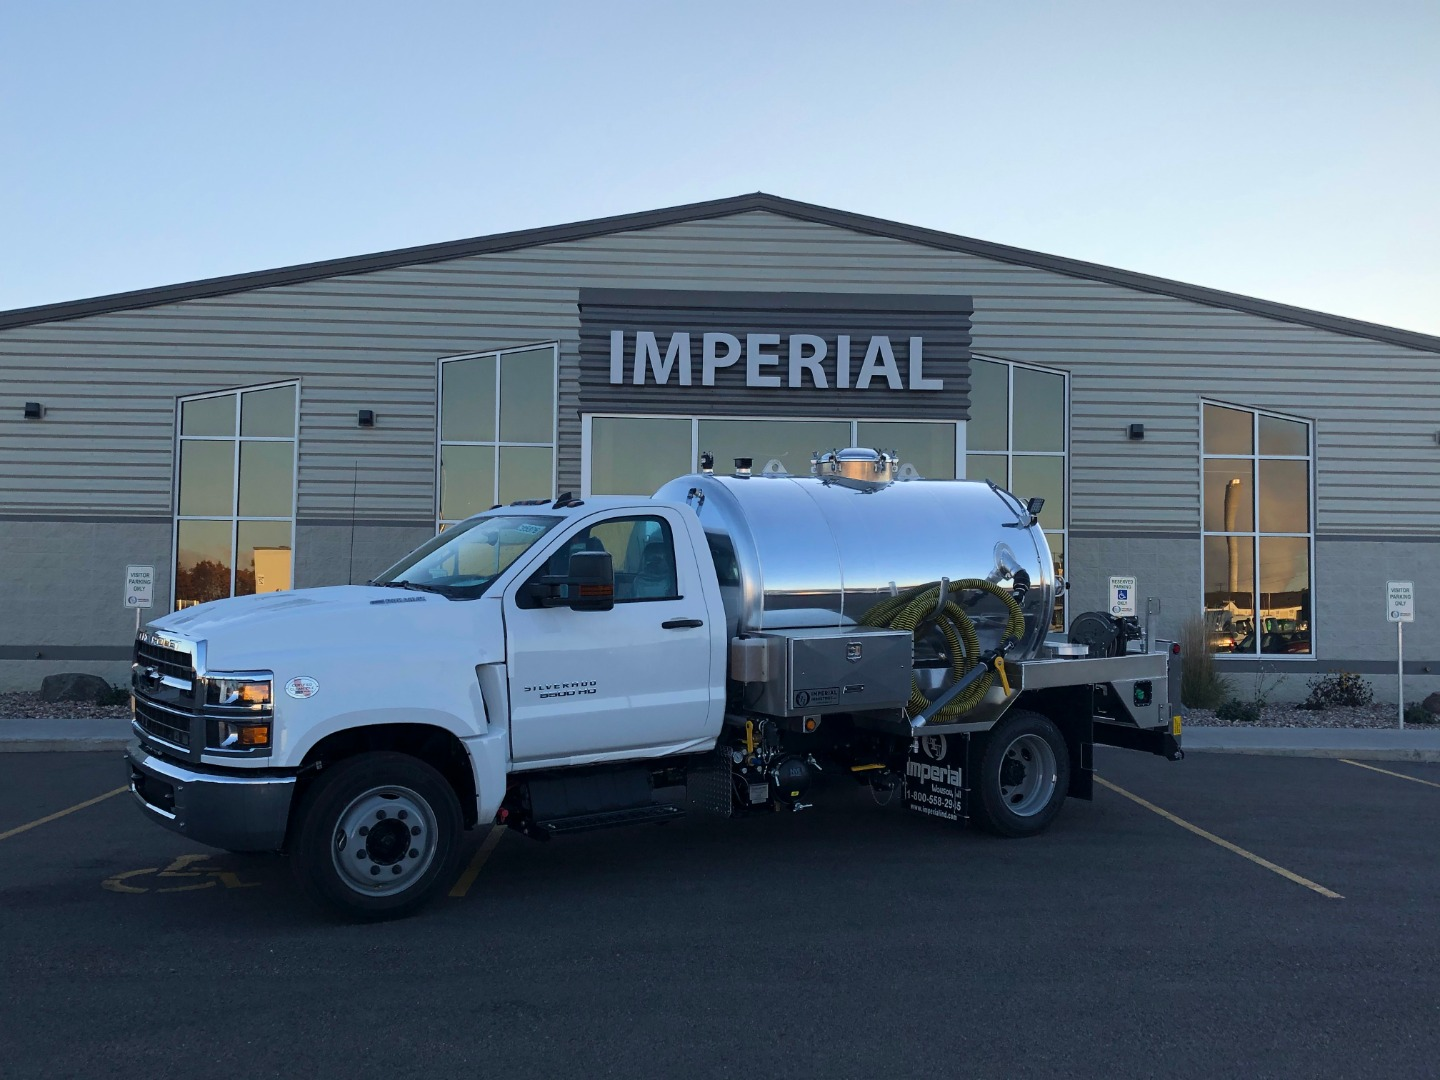 2019 Chevrolet Silverado 5500 Regular Cab DRW 4x2, Imperial Industries Inc. Other/Specialty #19C2638 - photo 1